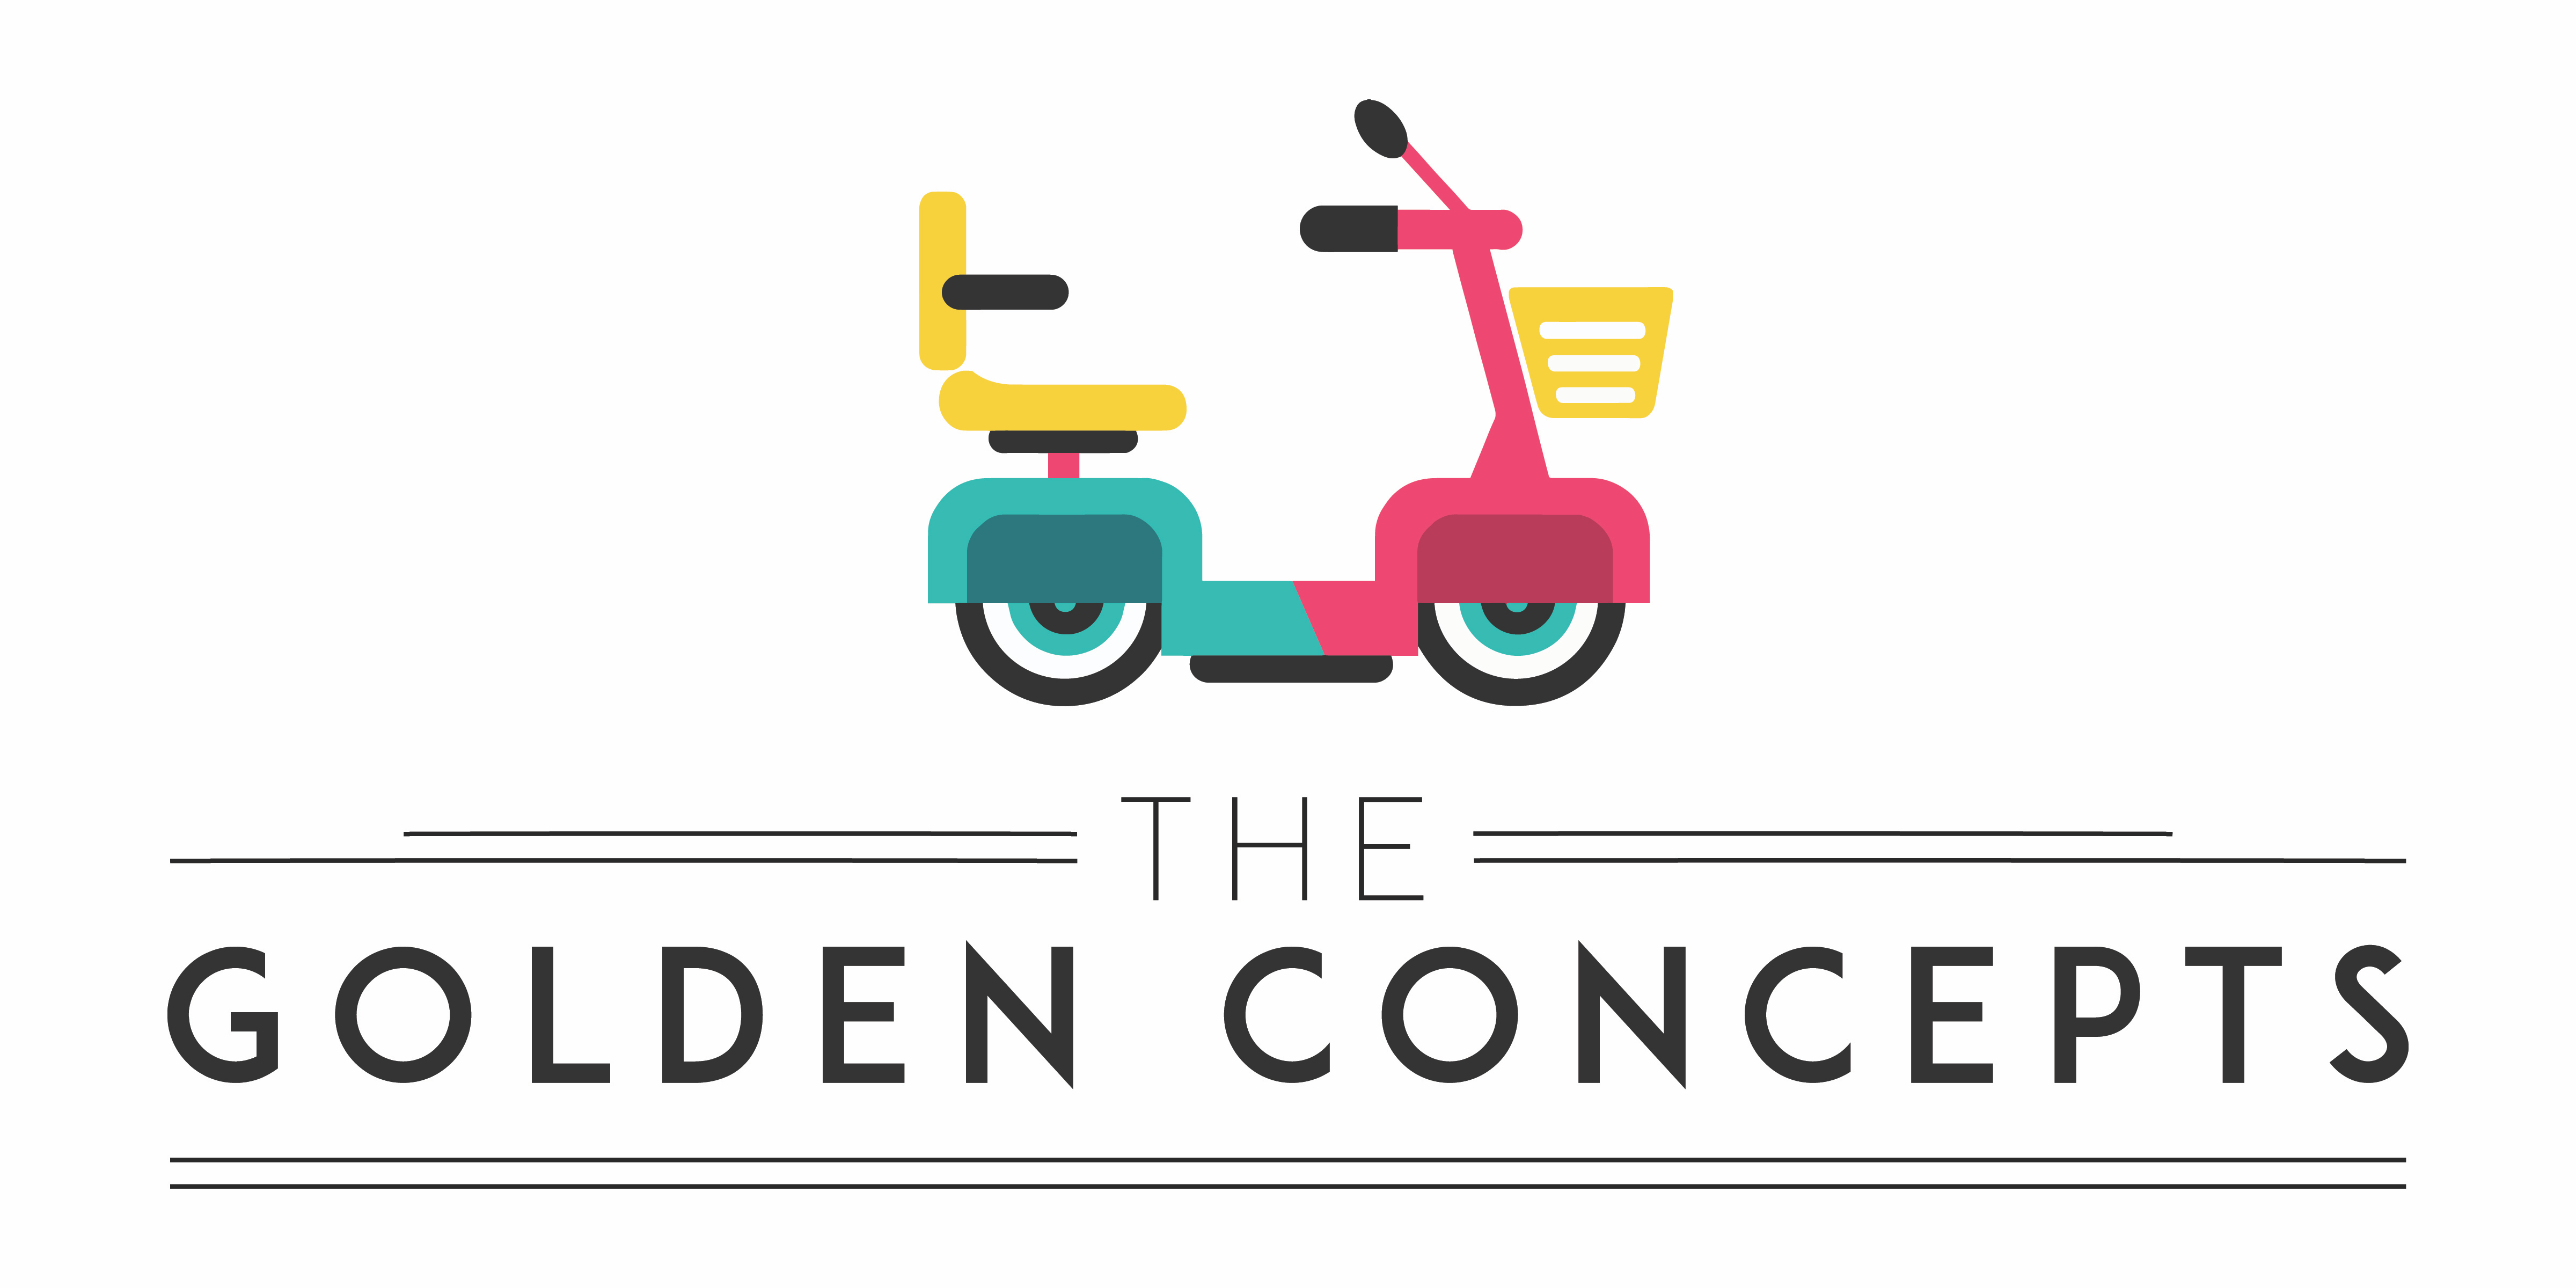 The Golden Concepts Help Center home page